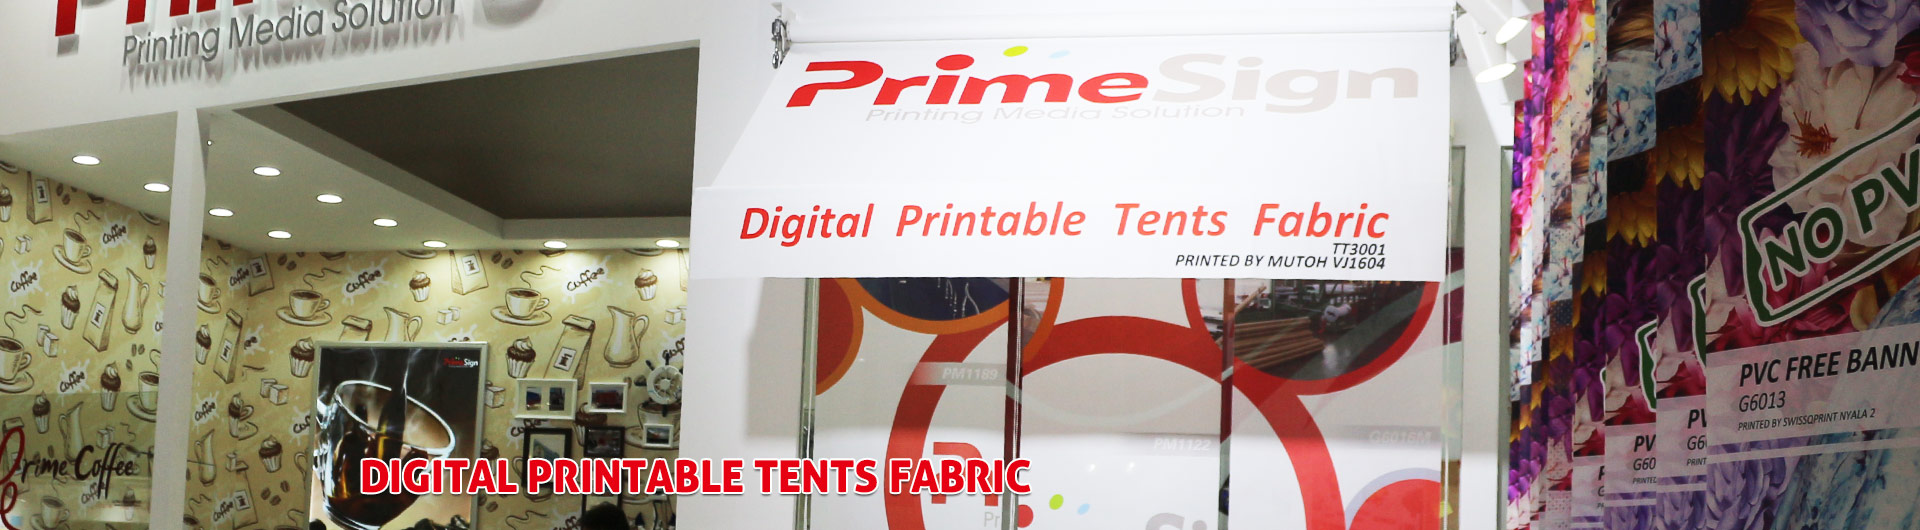 Digital Printable Tents Fabric